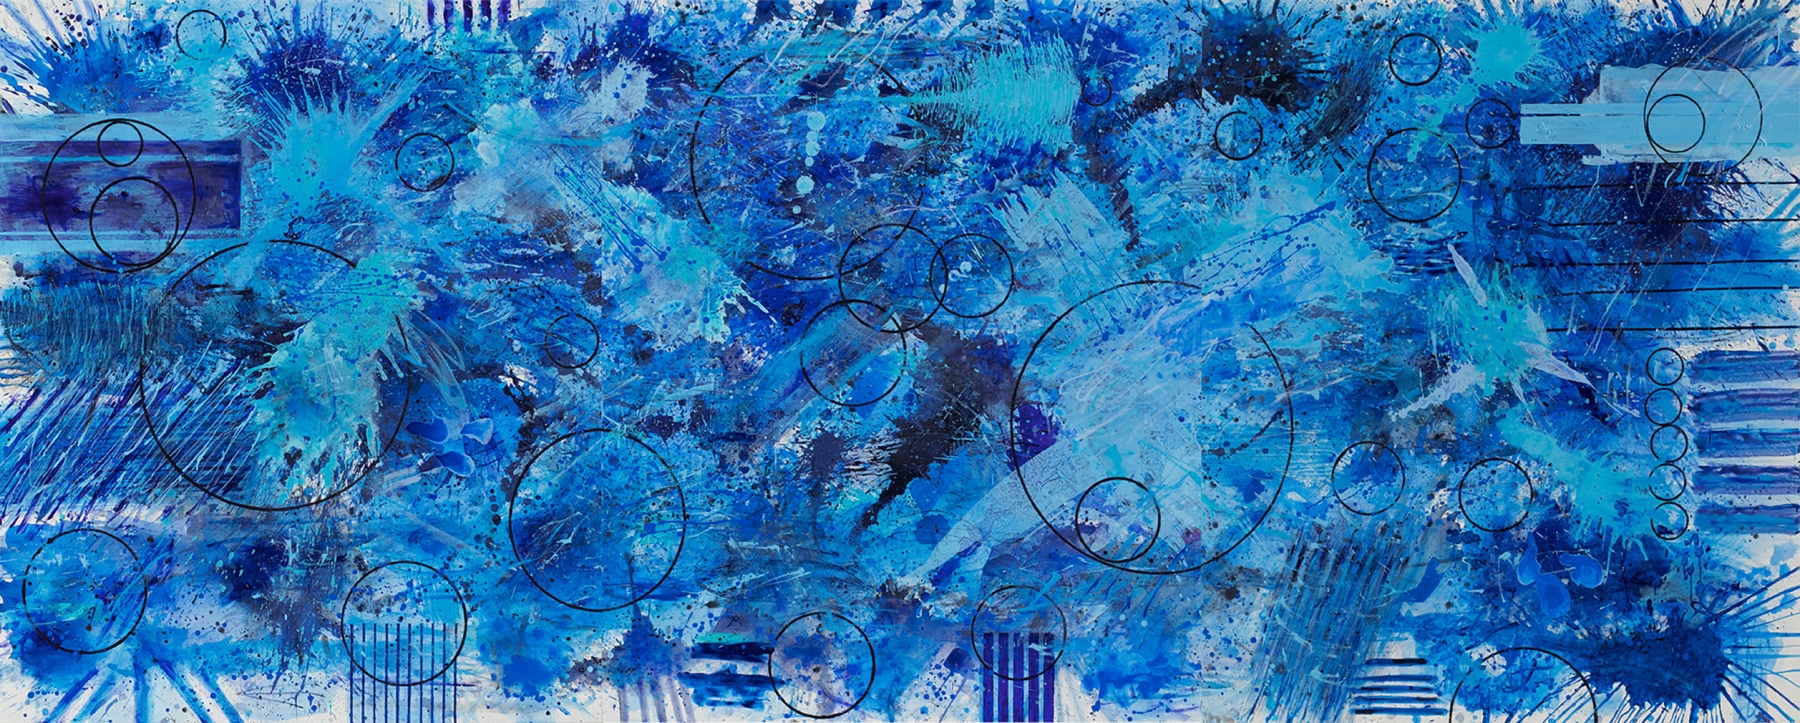 J. Steven Manolis, BlueLand-Splash painting, 2018, 72 x 180 inches, Acrylic painting on canvas, Extra large Wall Art, Blue Abstract Art for sale at Manolis Projects Art Gallery, Miami, Fl